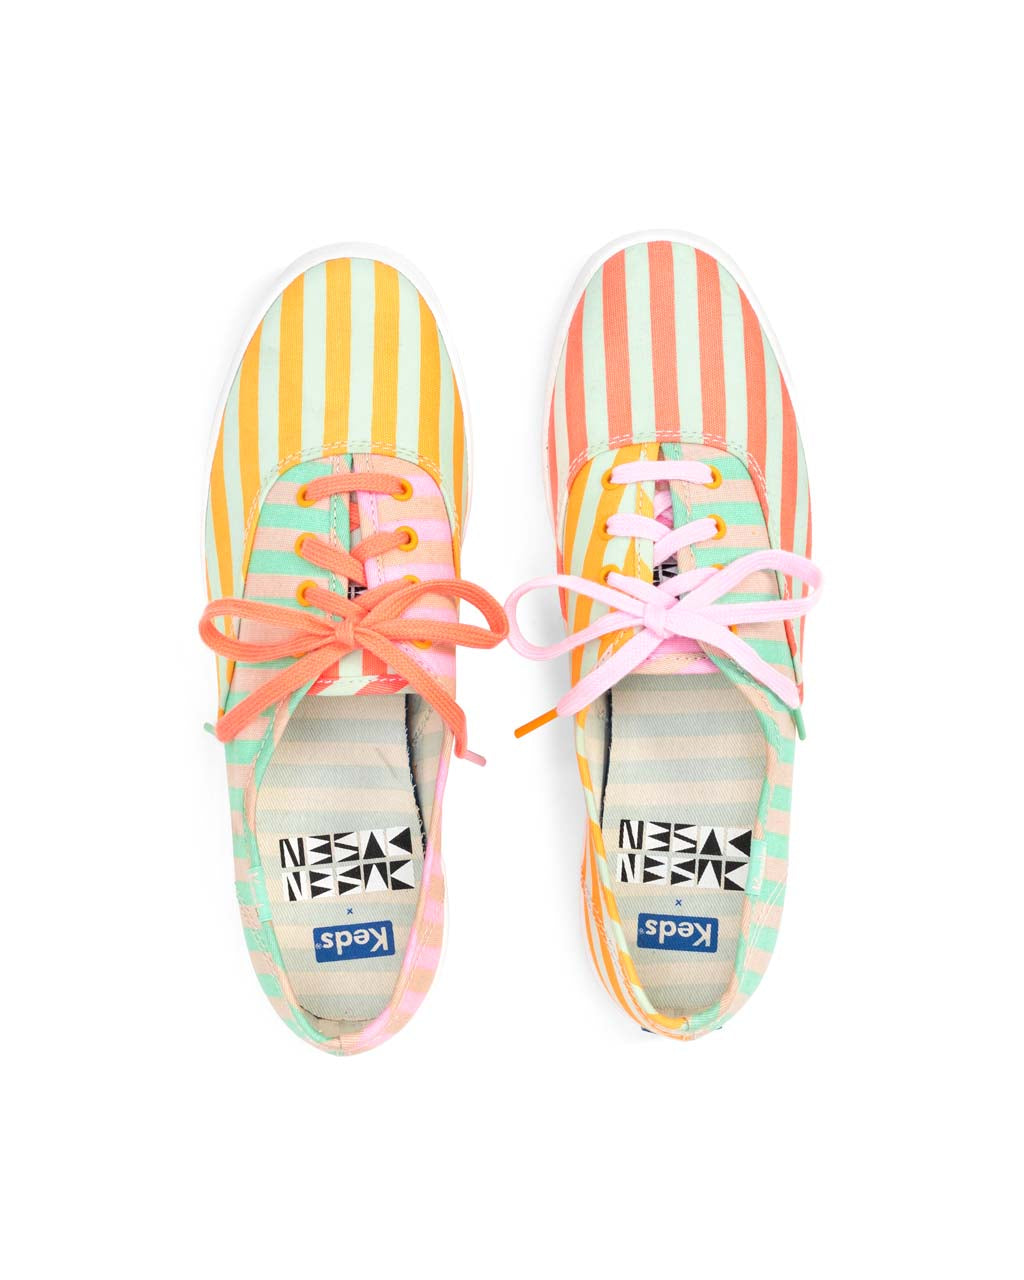 These Keds have a super-comfy Dream Foam™ footbed.